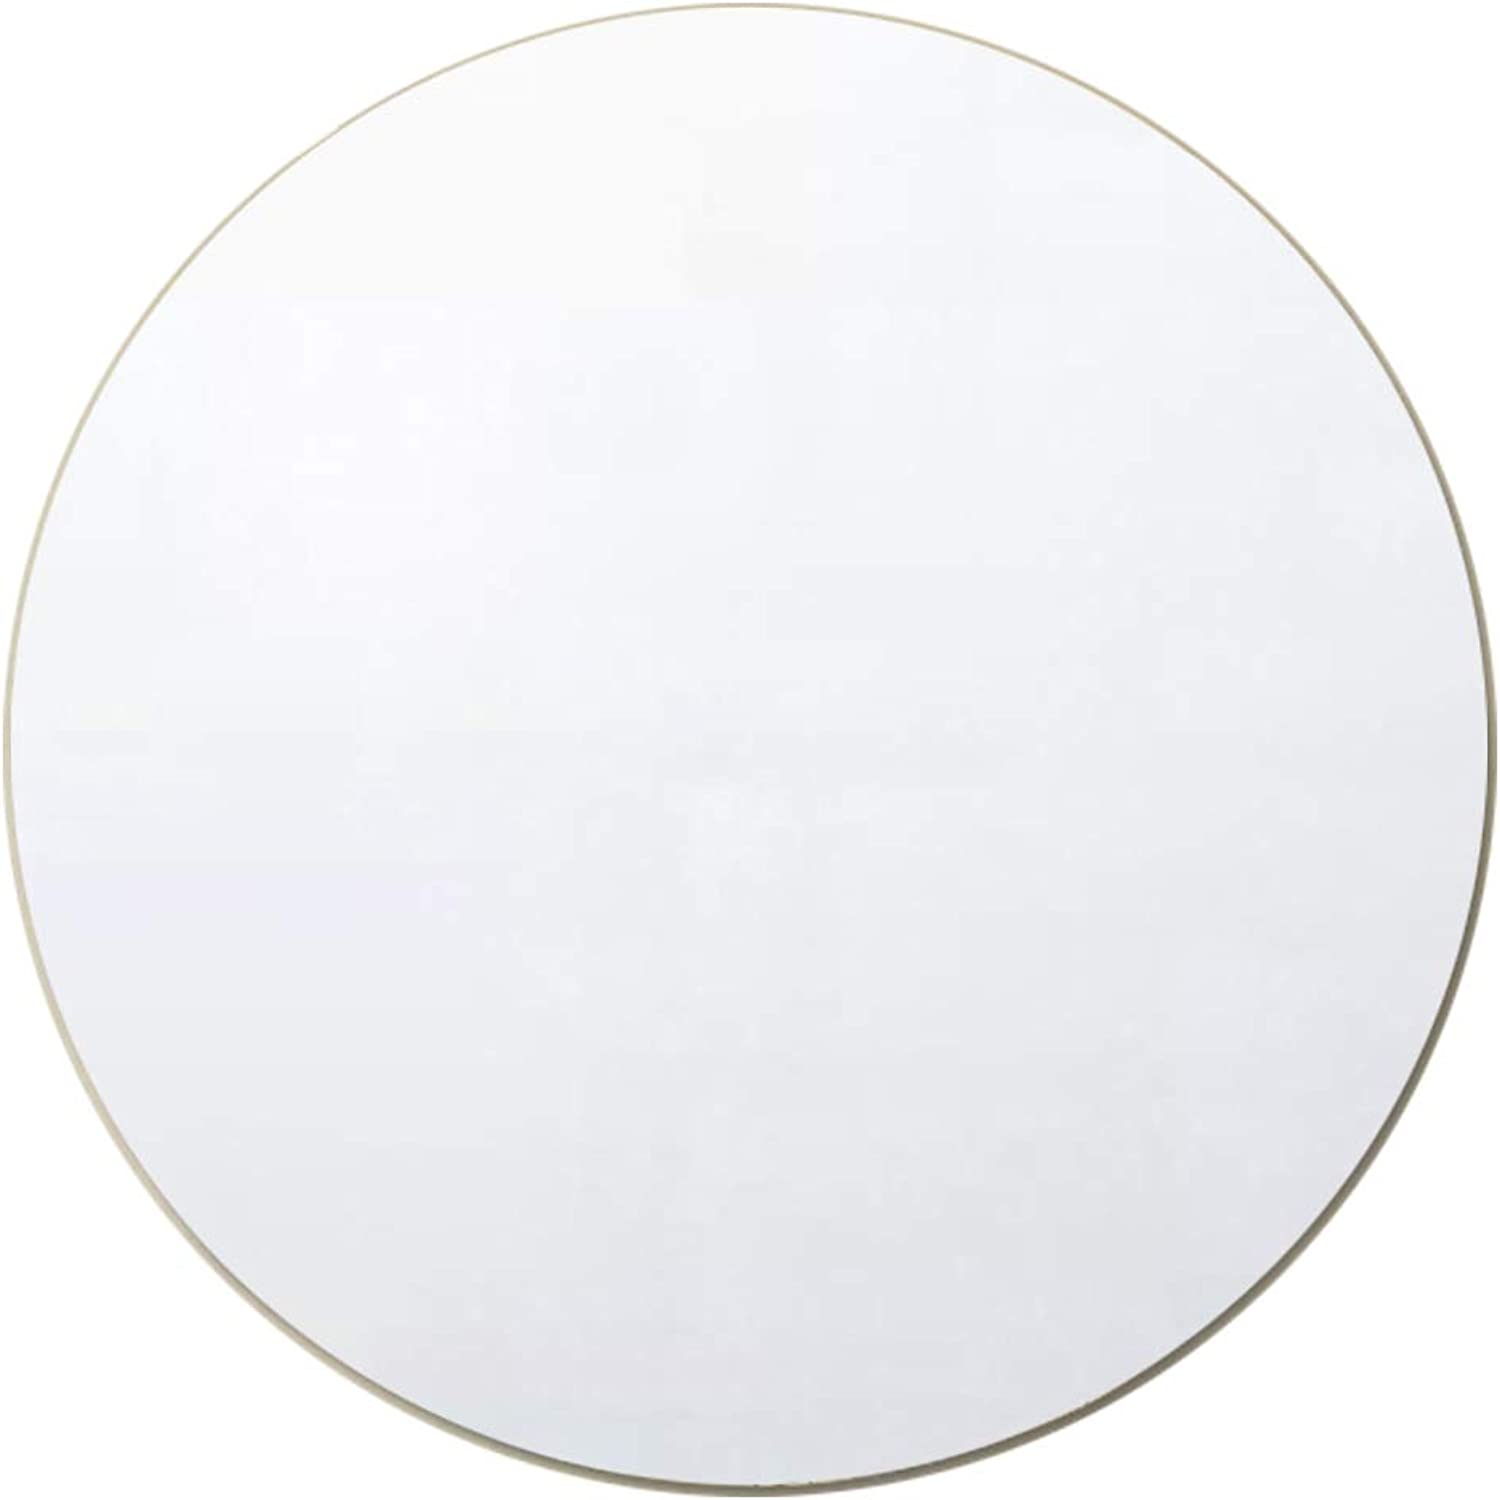 Vanity Mirror for Wall Simple Frameless Round Wall Hanging Mirror 40CM (16Inch) for Bathroom Shave Shower Decorative Makeup Mirror